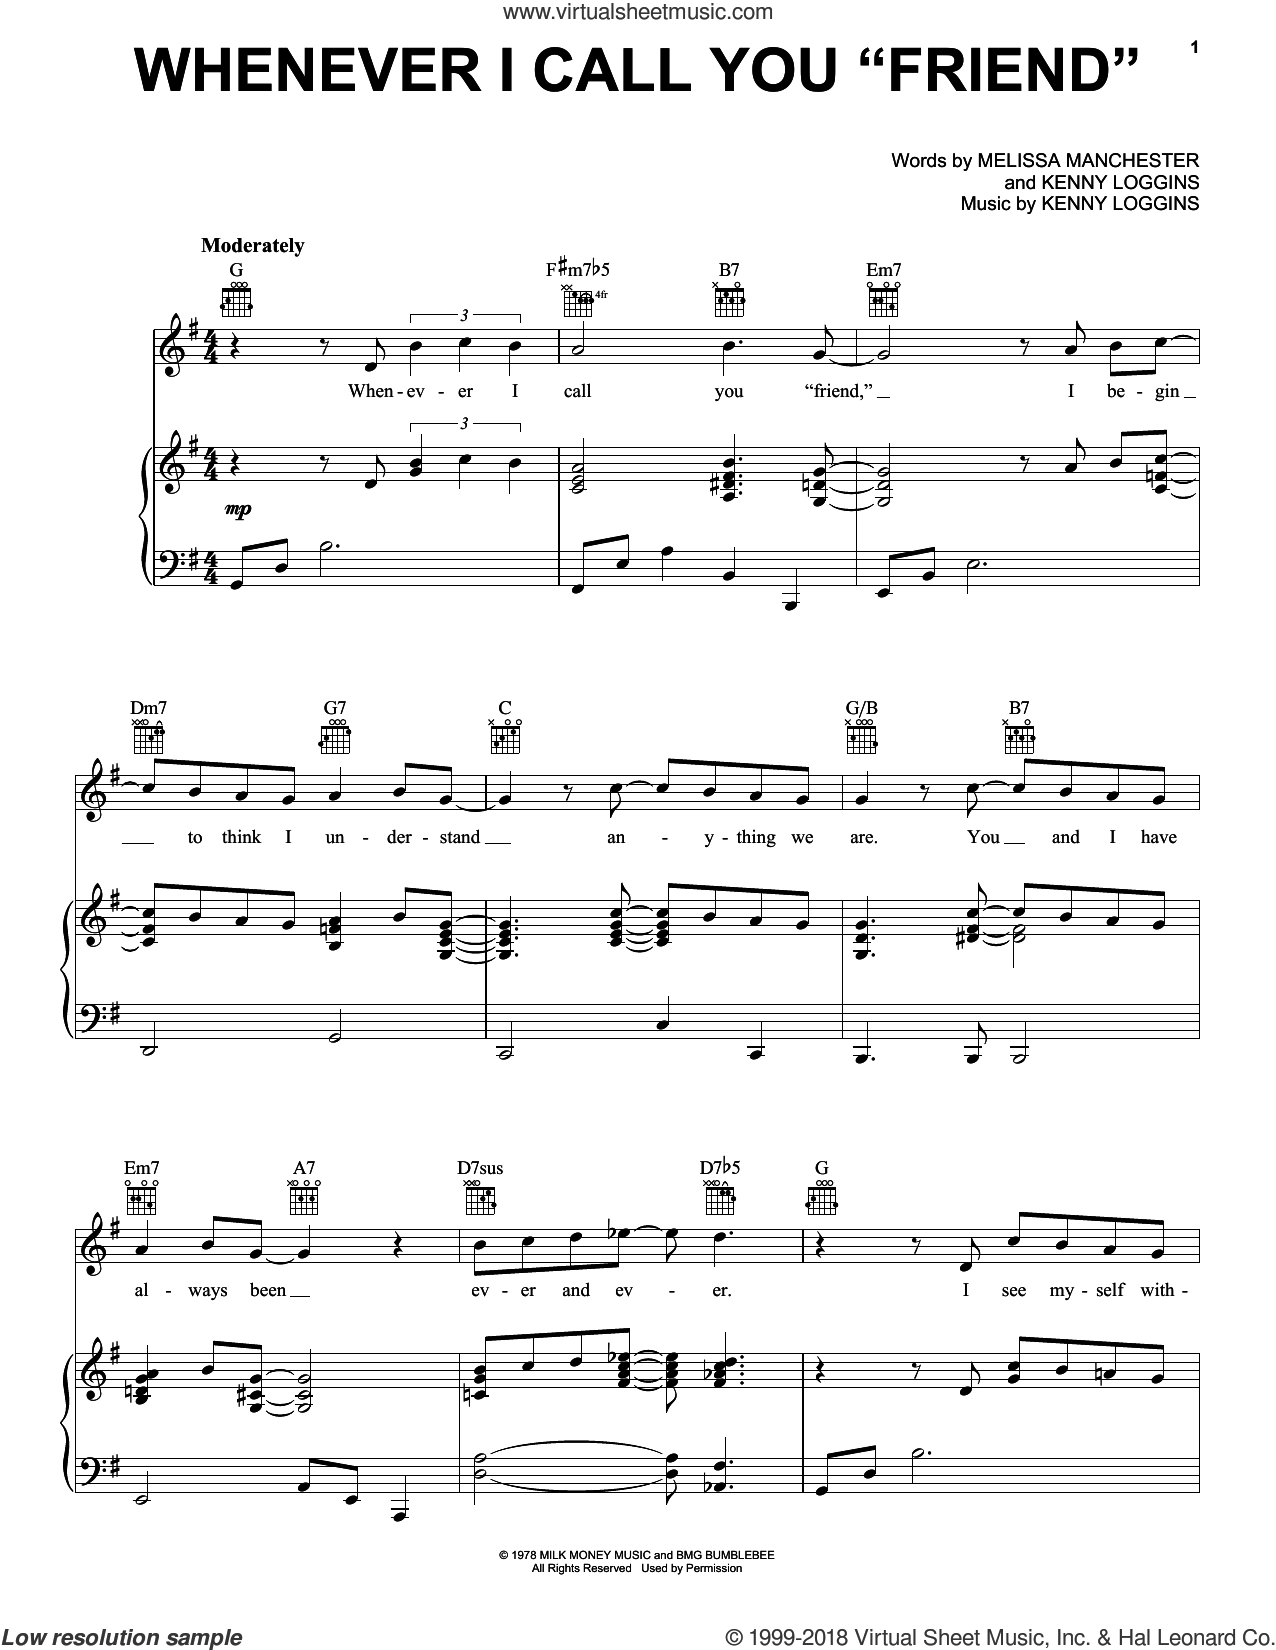 Whenever I Call You 'Friend' sheet music for voice, piano or guitar by Kenny Loggins and Melissa Manchester, intermediate skill level